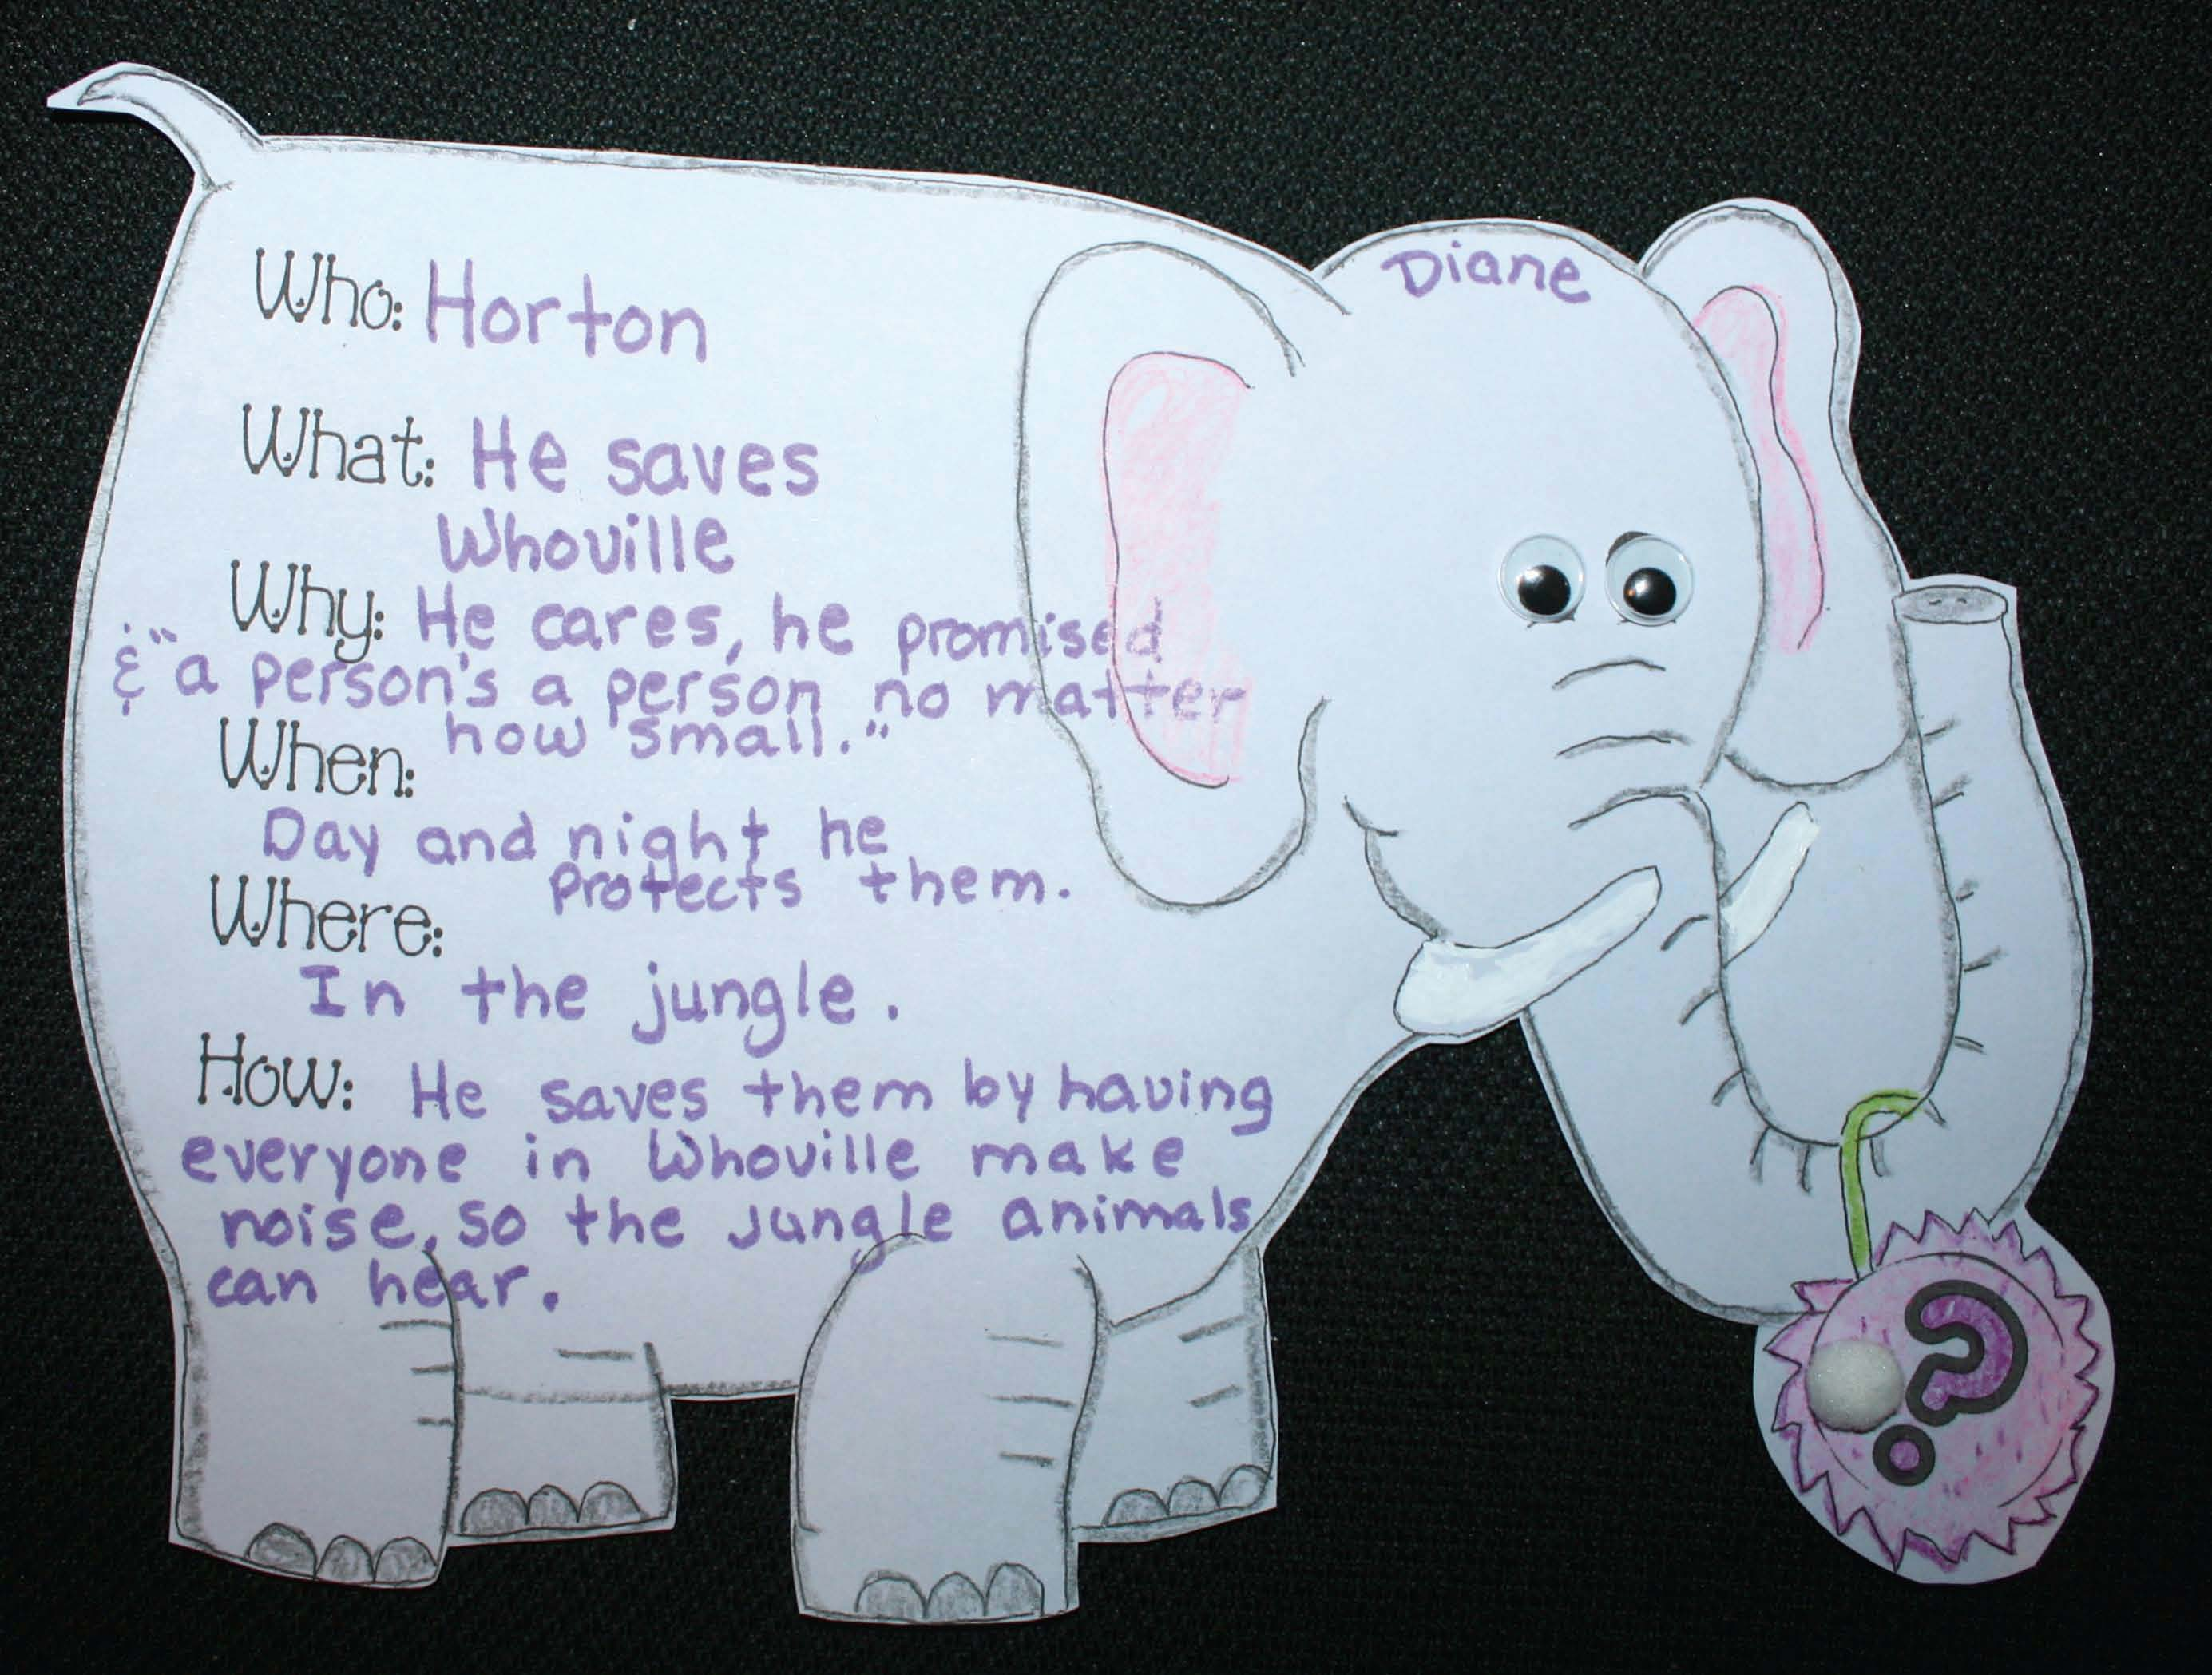 horton hears a who activities, horton crafts, horton video, horton writing prompts, elephant crafts, elephant activities, elephant mask, elephant puppet, Seuss activities, Seuss crafts, Seuss games, comparing Elmer with Horton activities, common core Seuss, common core horton hears a who, alphabetical list of words that rhyme with who